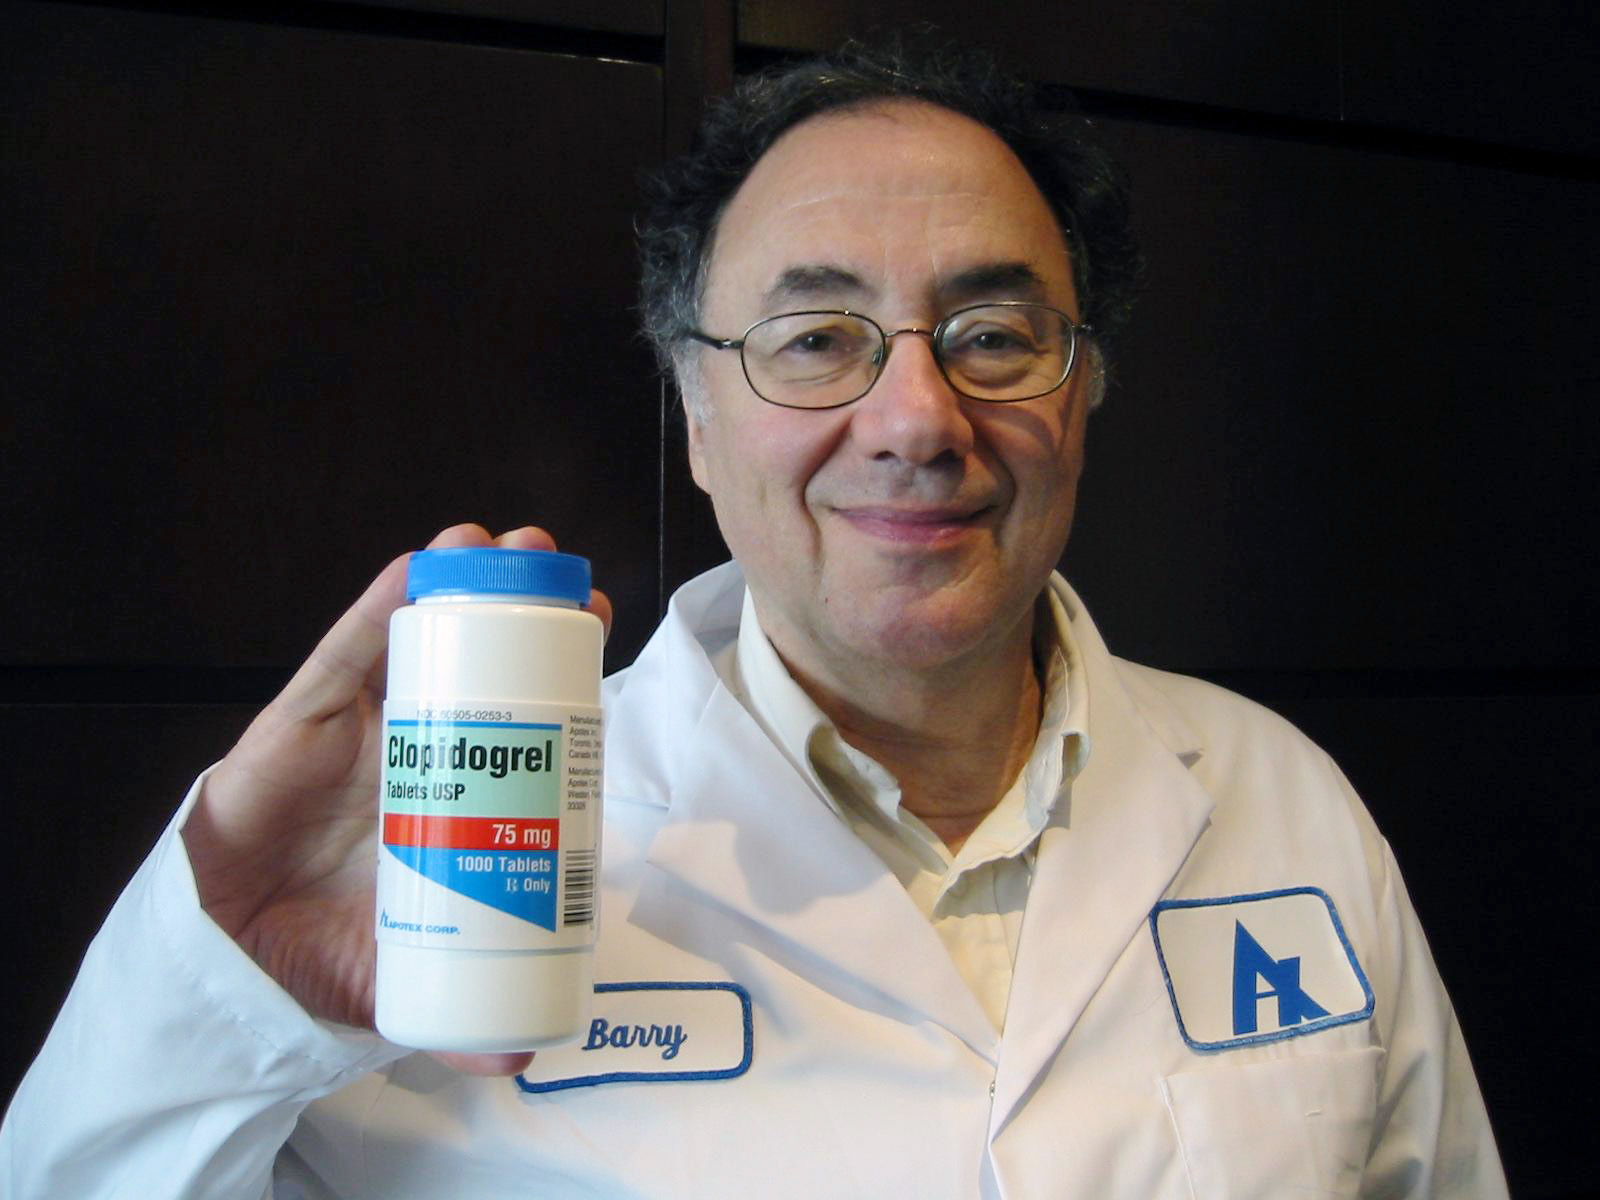 Apotex Inc. Chief Executive Officer Barry Sherman poses with